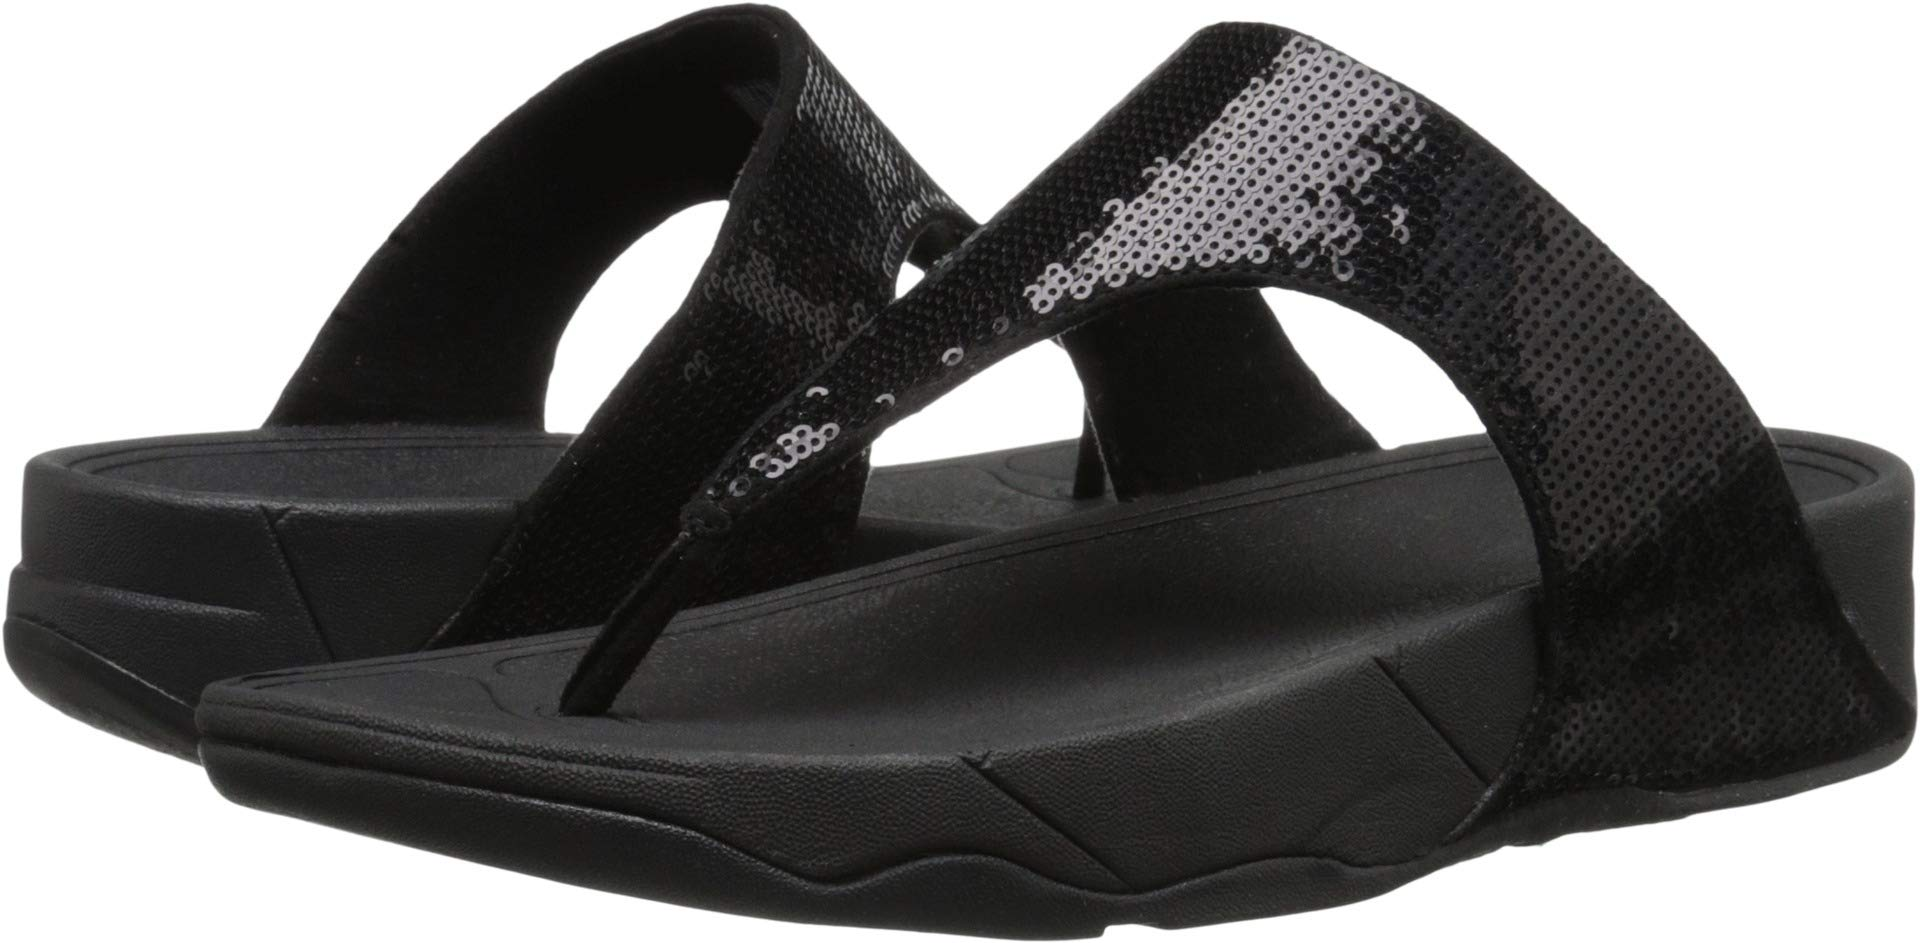 FitFlop Women's Classic Electra Sandal ,Black ,8 M US by FITFLOP